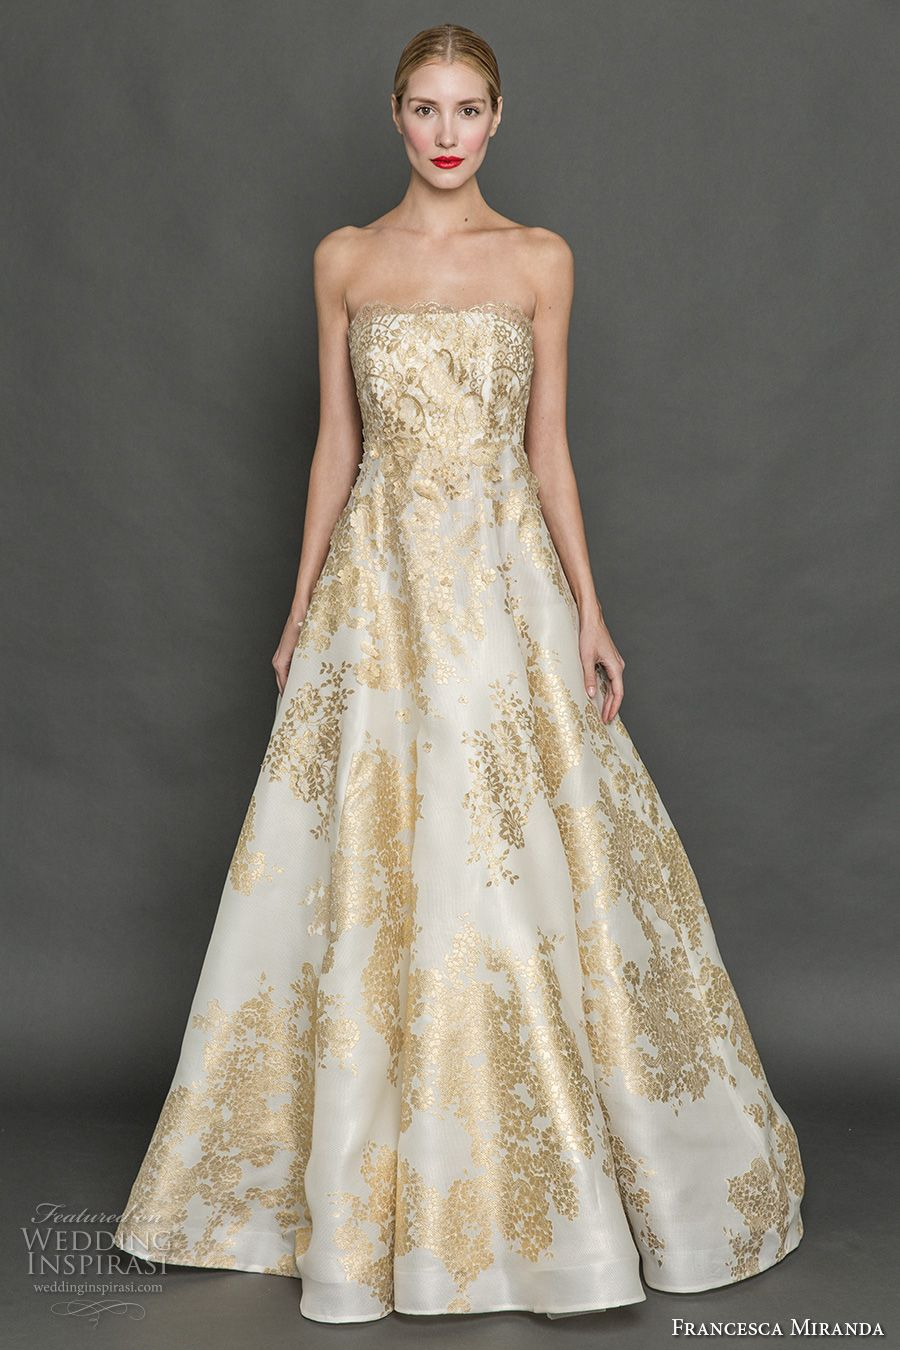 Francesca Miranda Fall 2017 Bridal Strapless Straight Across Neckline Full Embellishment Gold Embroidery Princess Glamorous A